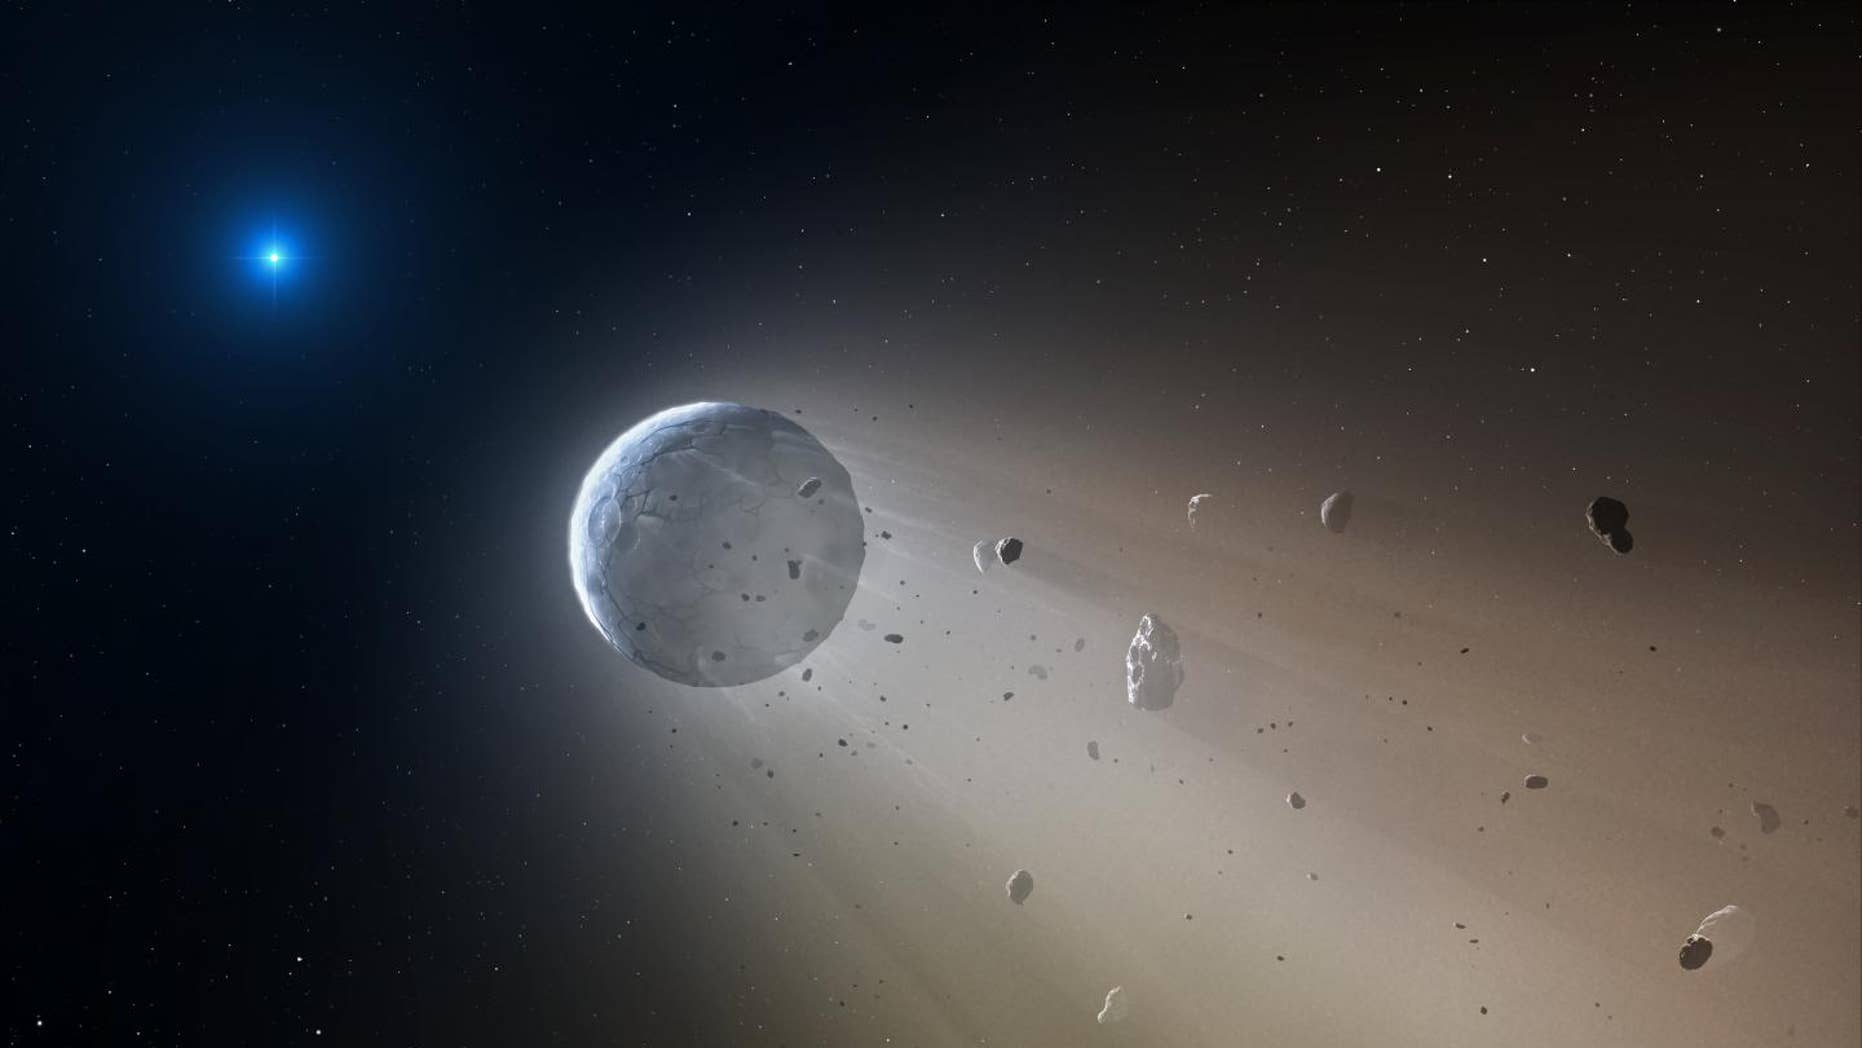 Ceres-like asteroid artist conception